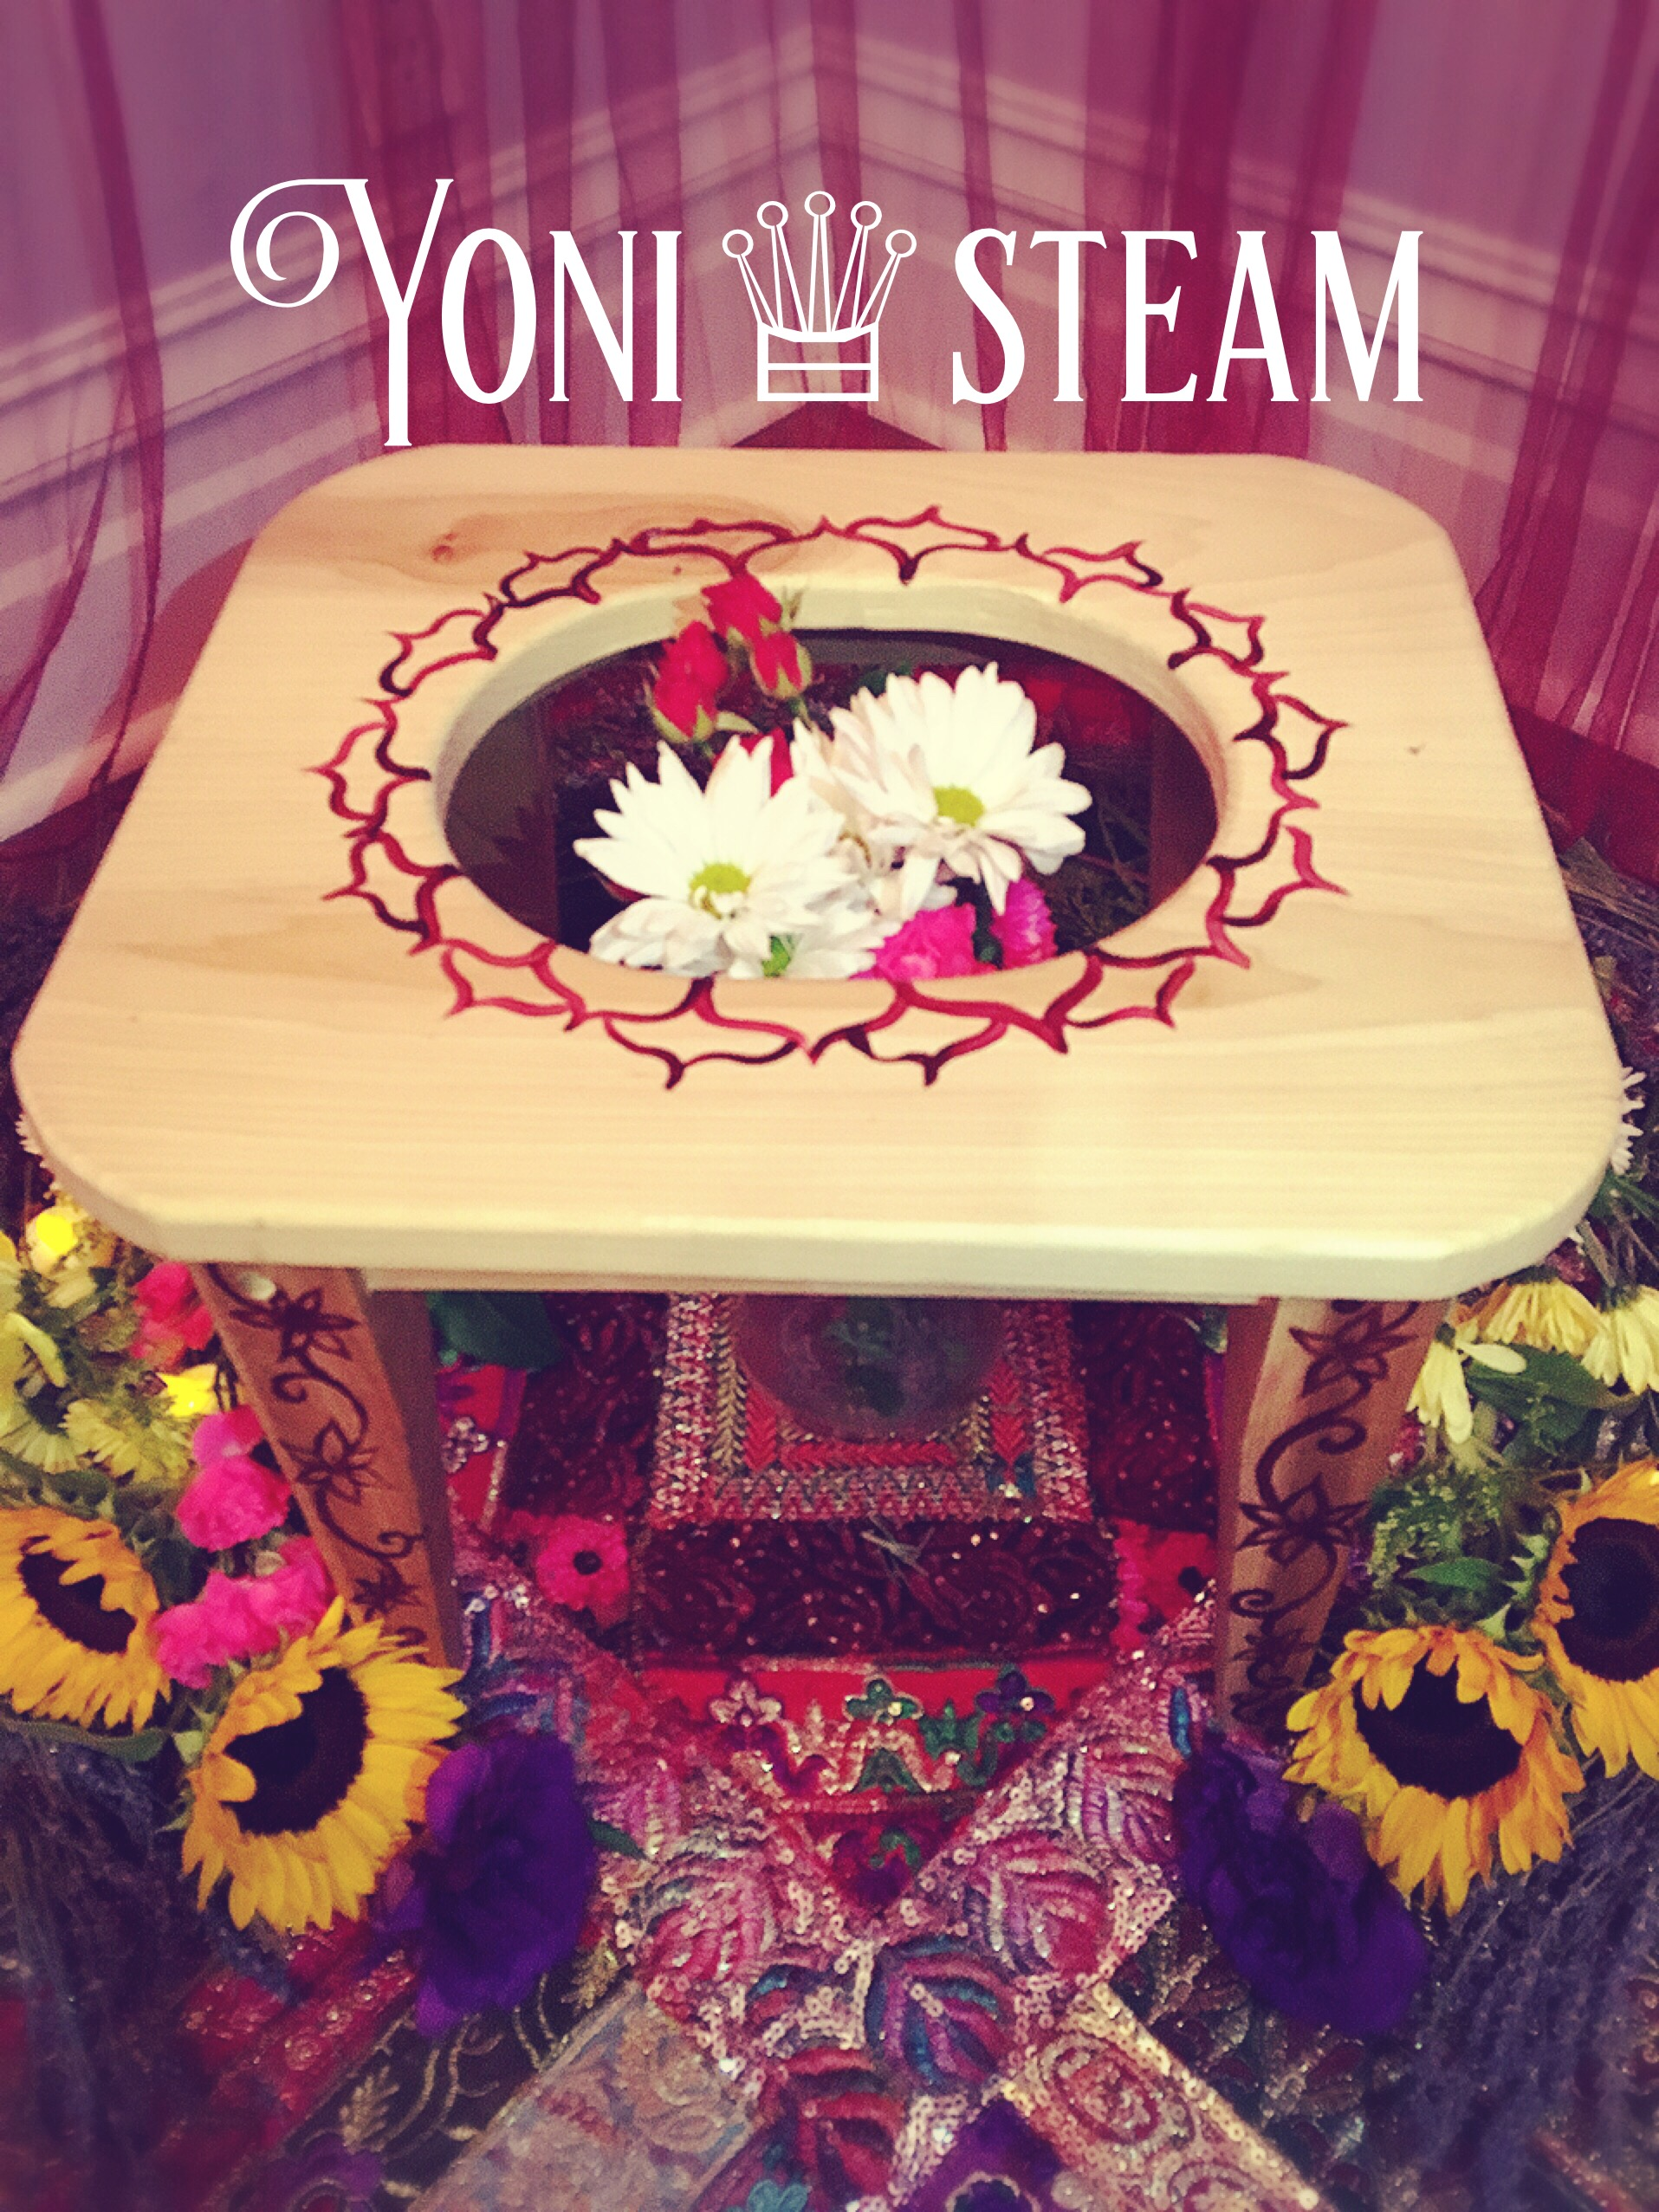 Yoni steaming radiant moon medicine radiant moon medicine yoni steaming i s a supreme treatment for your womb temple your divine feminine spirit yonisteam yoni steam solutioingenieria Gallery